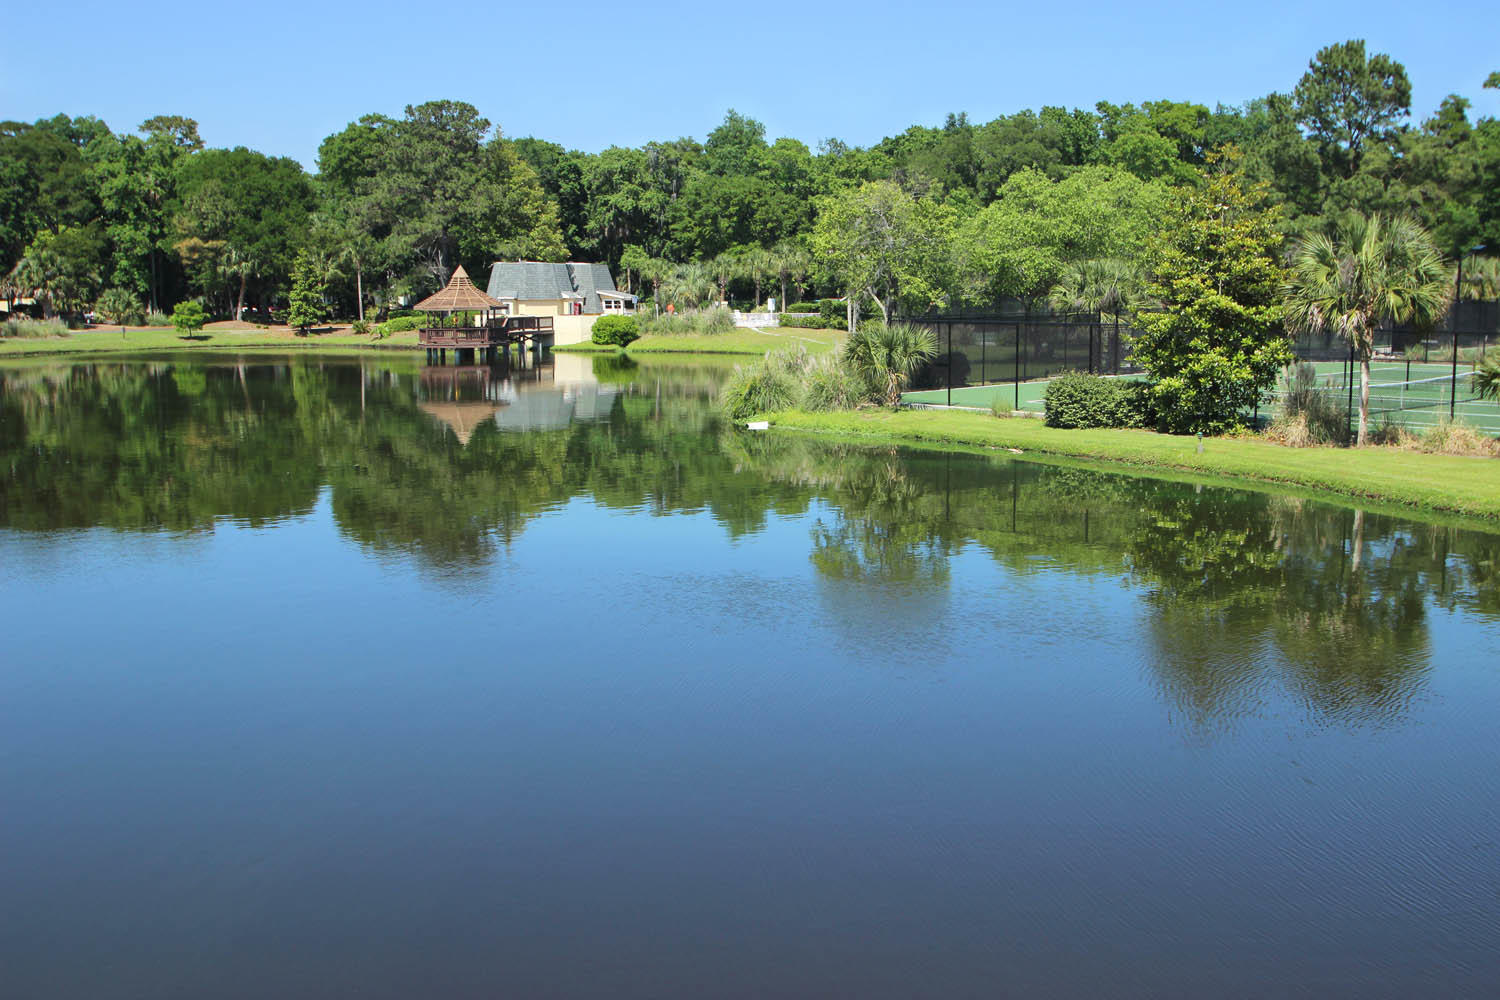 Lagoon by pool and tennis courts